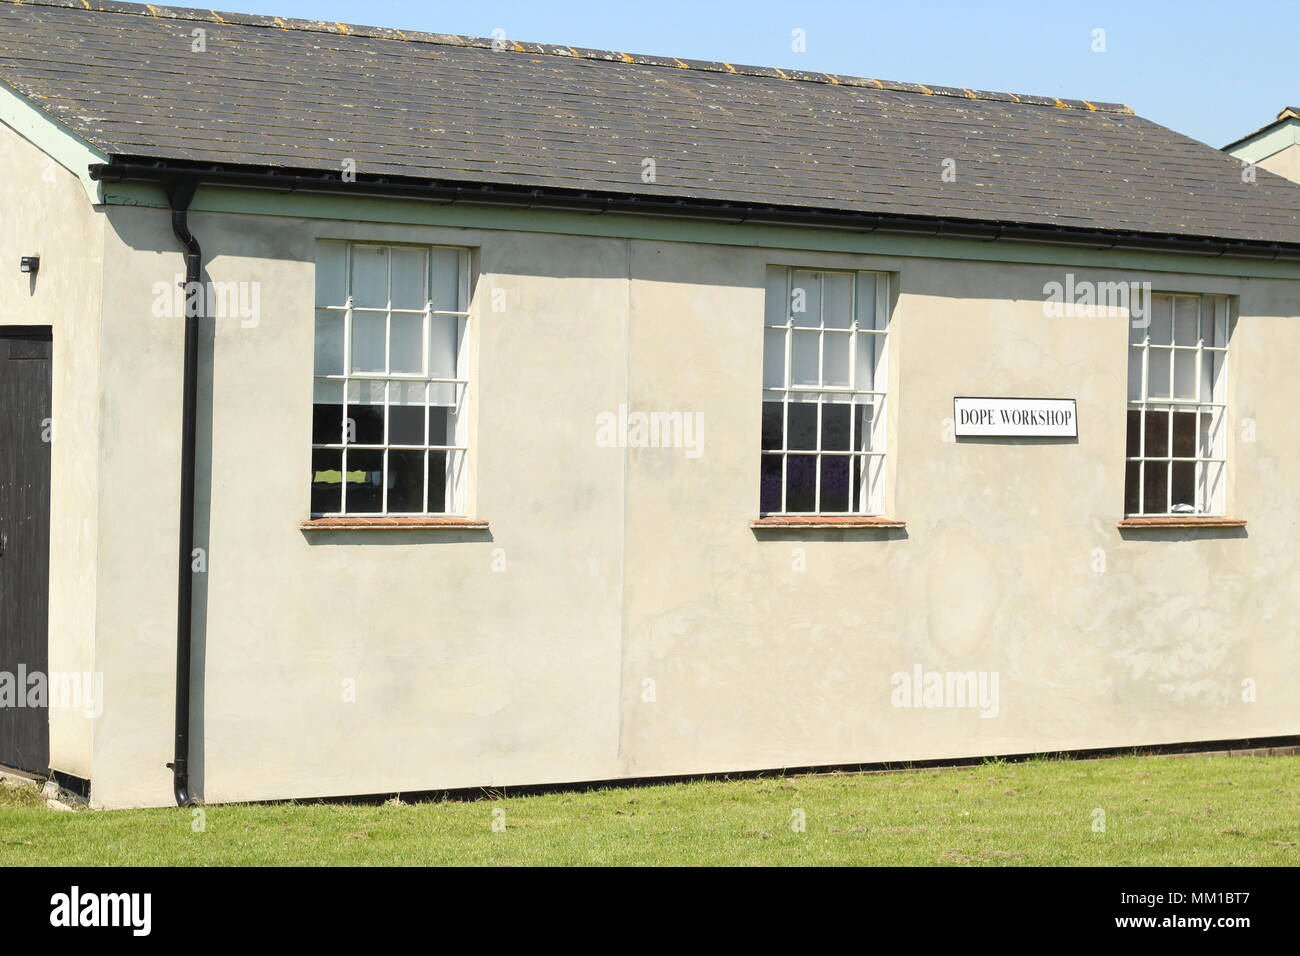 British Heritage - WW1 - Military Aviation historical sites. Photograph of the Dope shop at Stow Maries Aerodrome, Purleigh, Maldon, Essex. - Stock Image